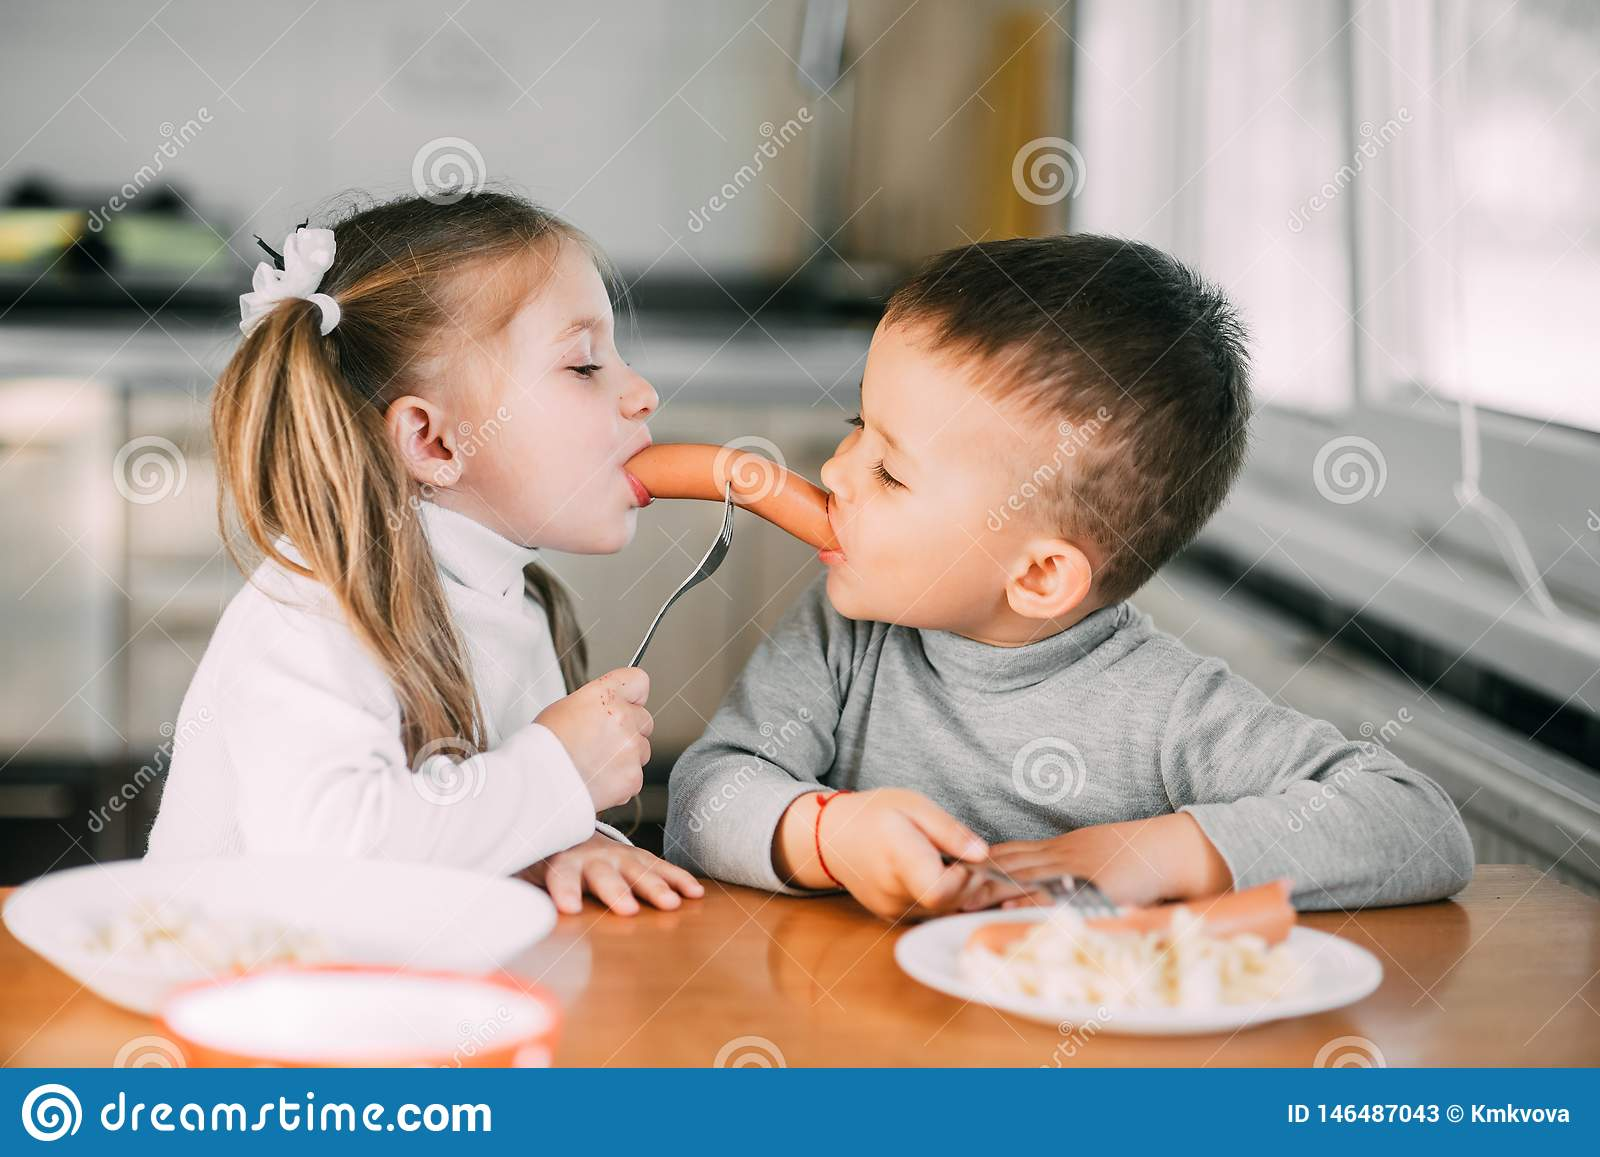 Children In The Kitchen Boy And Girl Eat Sausages With Pasta Very Fun And Together Share One Stock Image Image Of Face Love 146487043